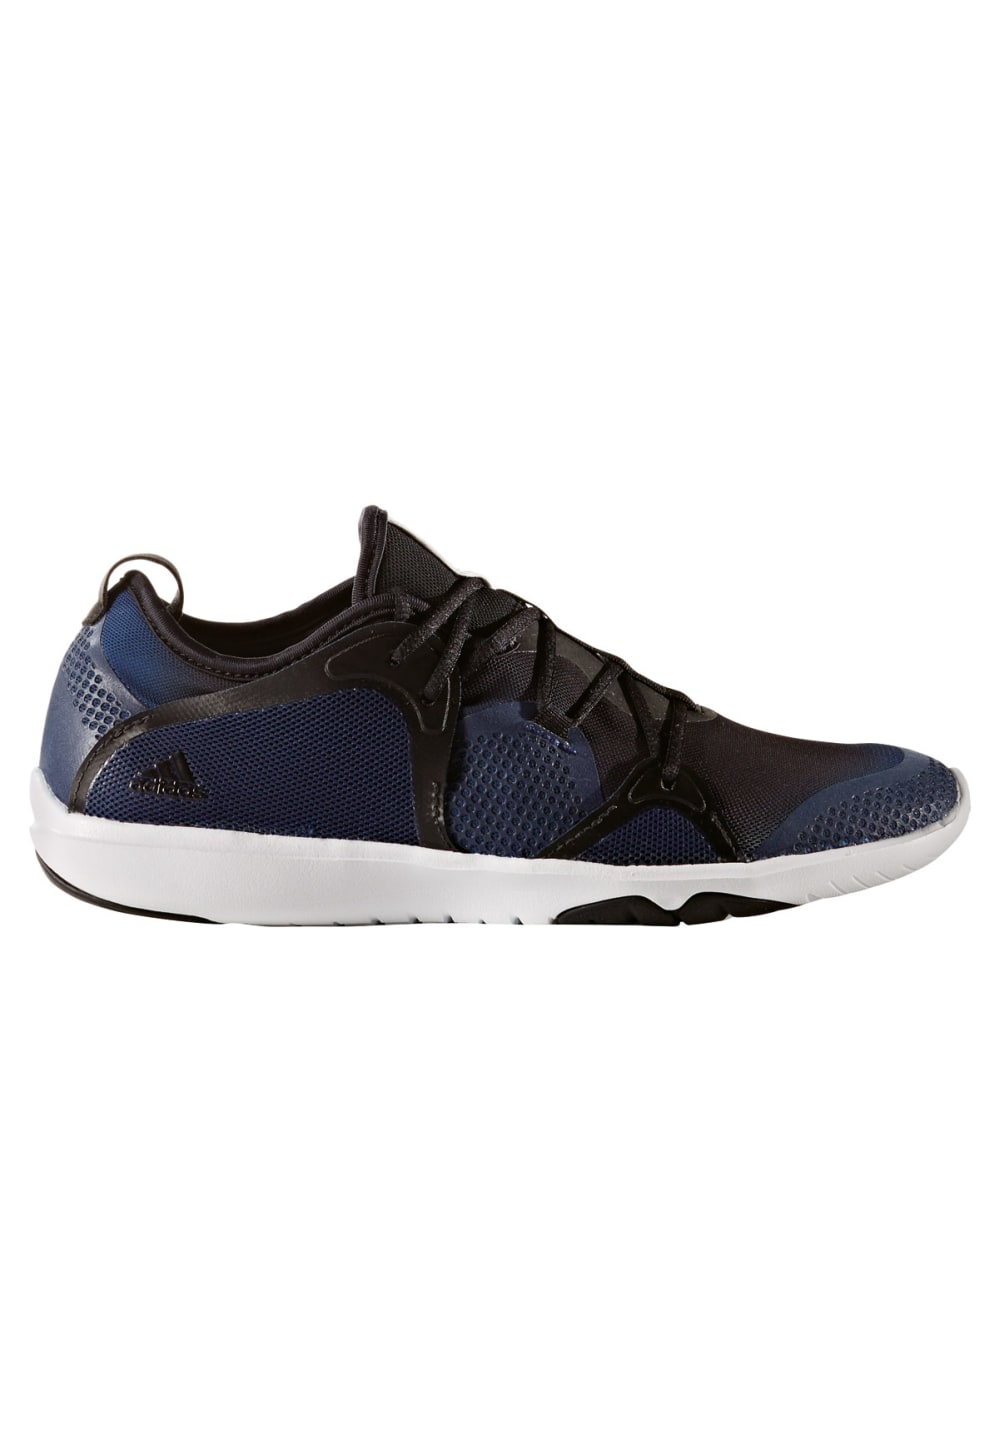 separation shoes 99975 cebe8 Next. -60%. adidas. adiPure 360.4 - Chaussures fitness pour Femme